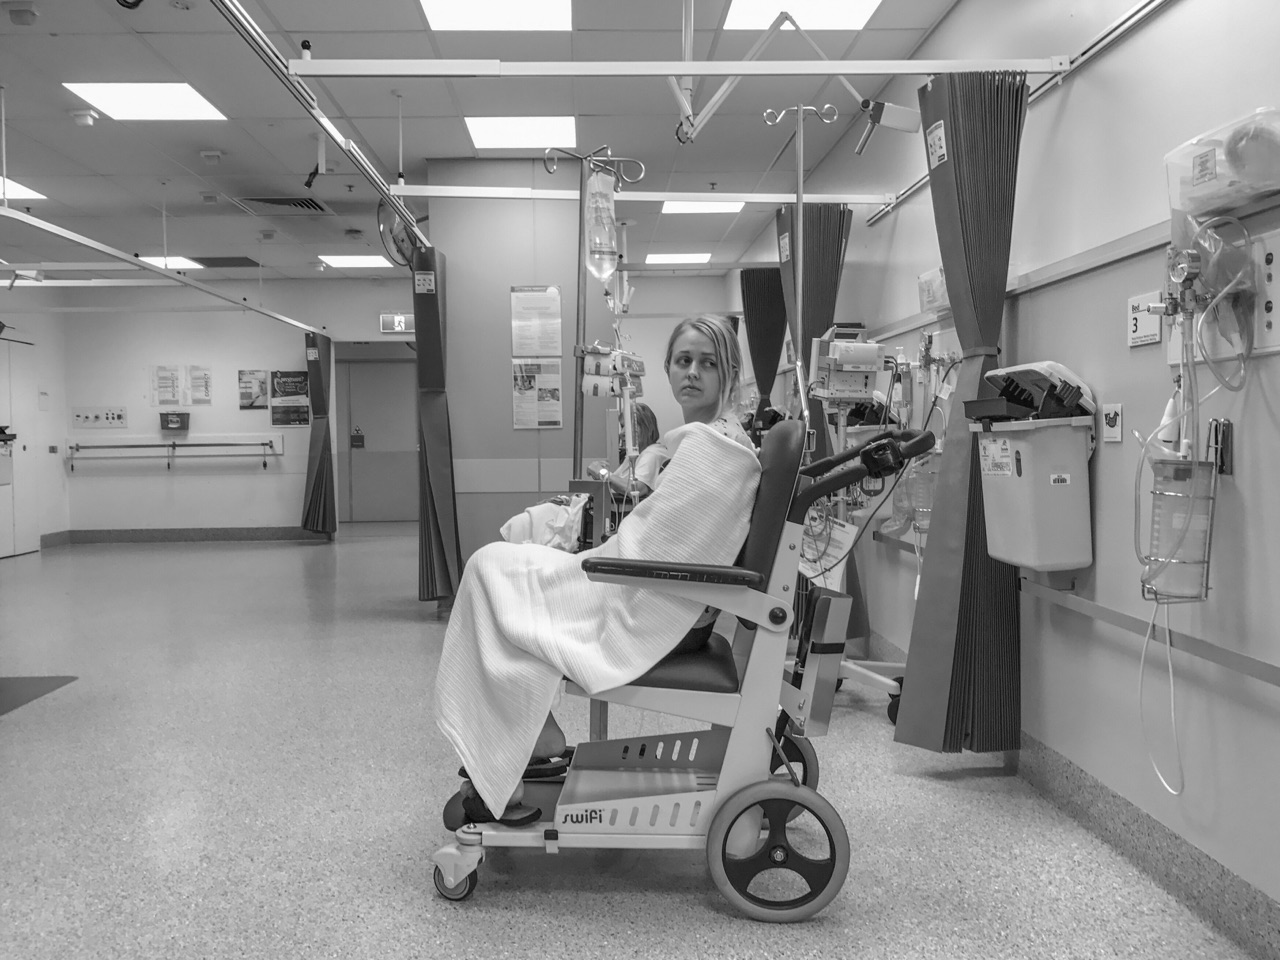 When Faye's white blood cell counts dropped, she sometimes had fevers. These can be very dangerous, so back to the hospital for tests and monitoring. This X-ray waiting room became an all too familiar site.